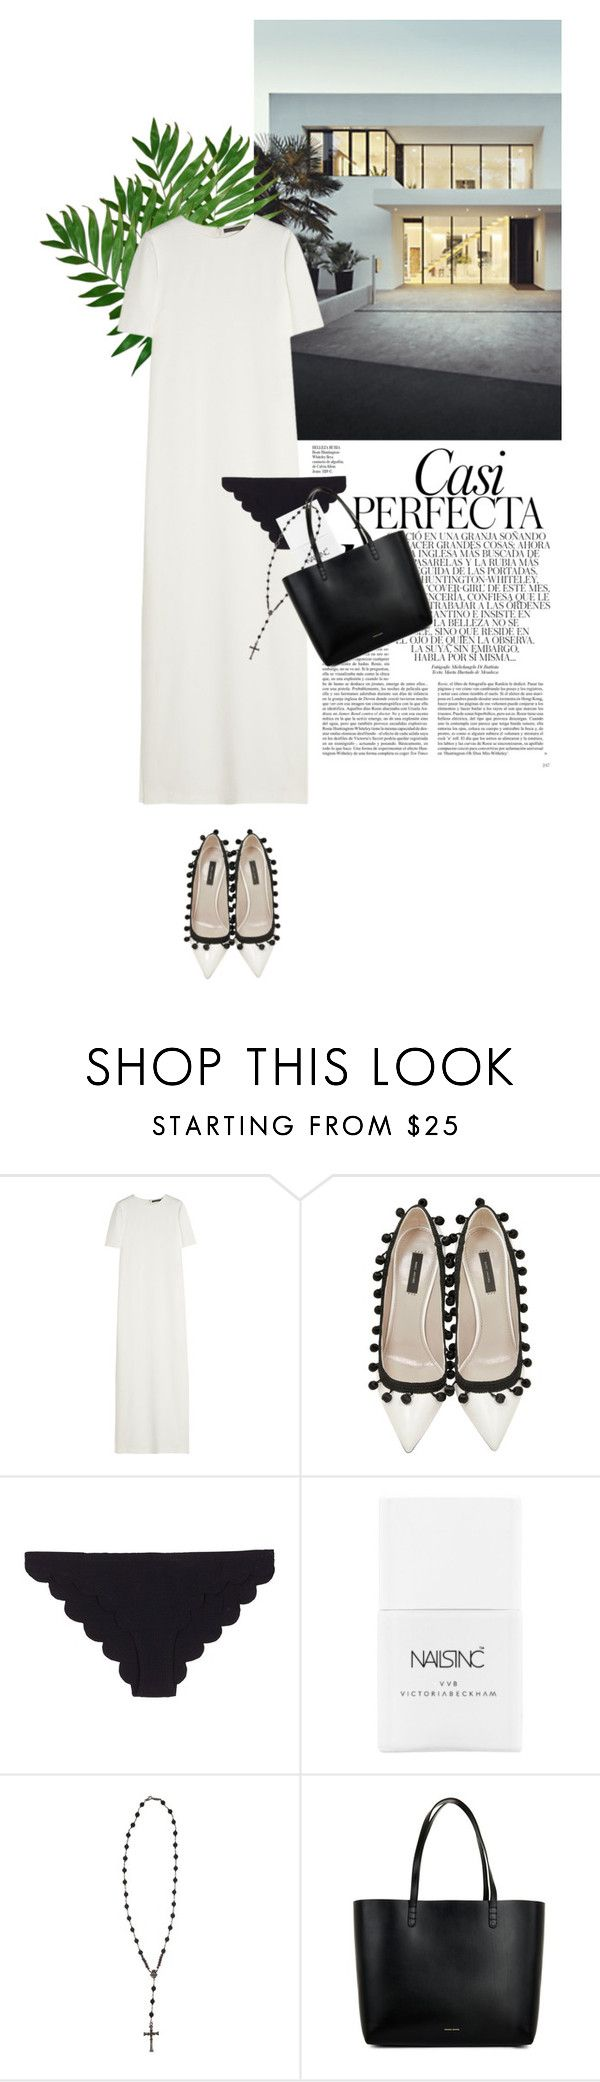 """""""dfghjklö"""" by rosa-loves-skittles ❤ liked on Polyvore featuring Whiteley, Alexander McQueen, Marc Jacobs, Marysia Swim, Nails Inc., Roman Paul and Mansur Gavriel"""